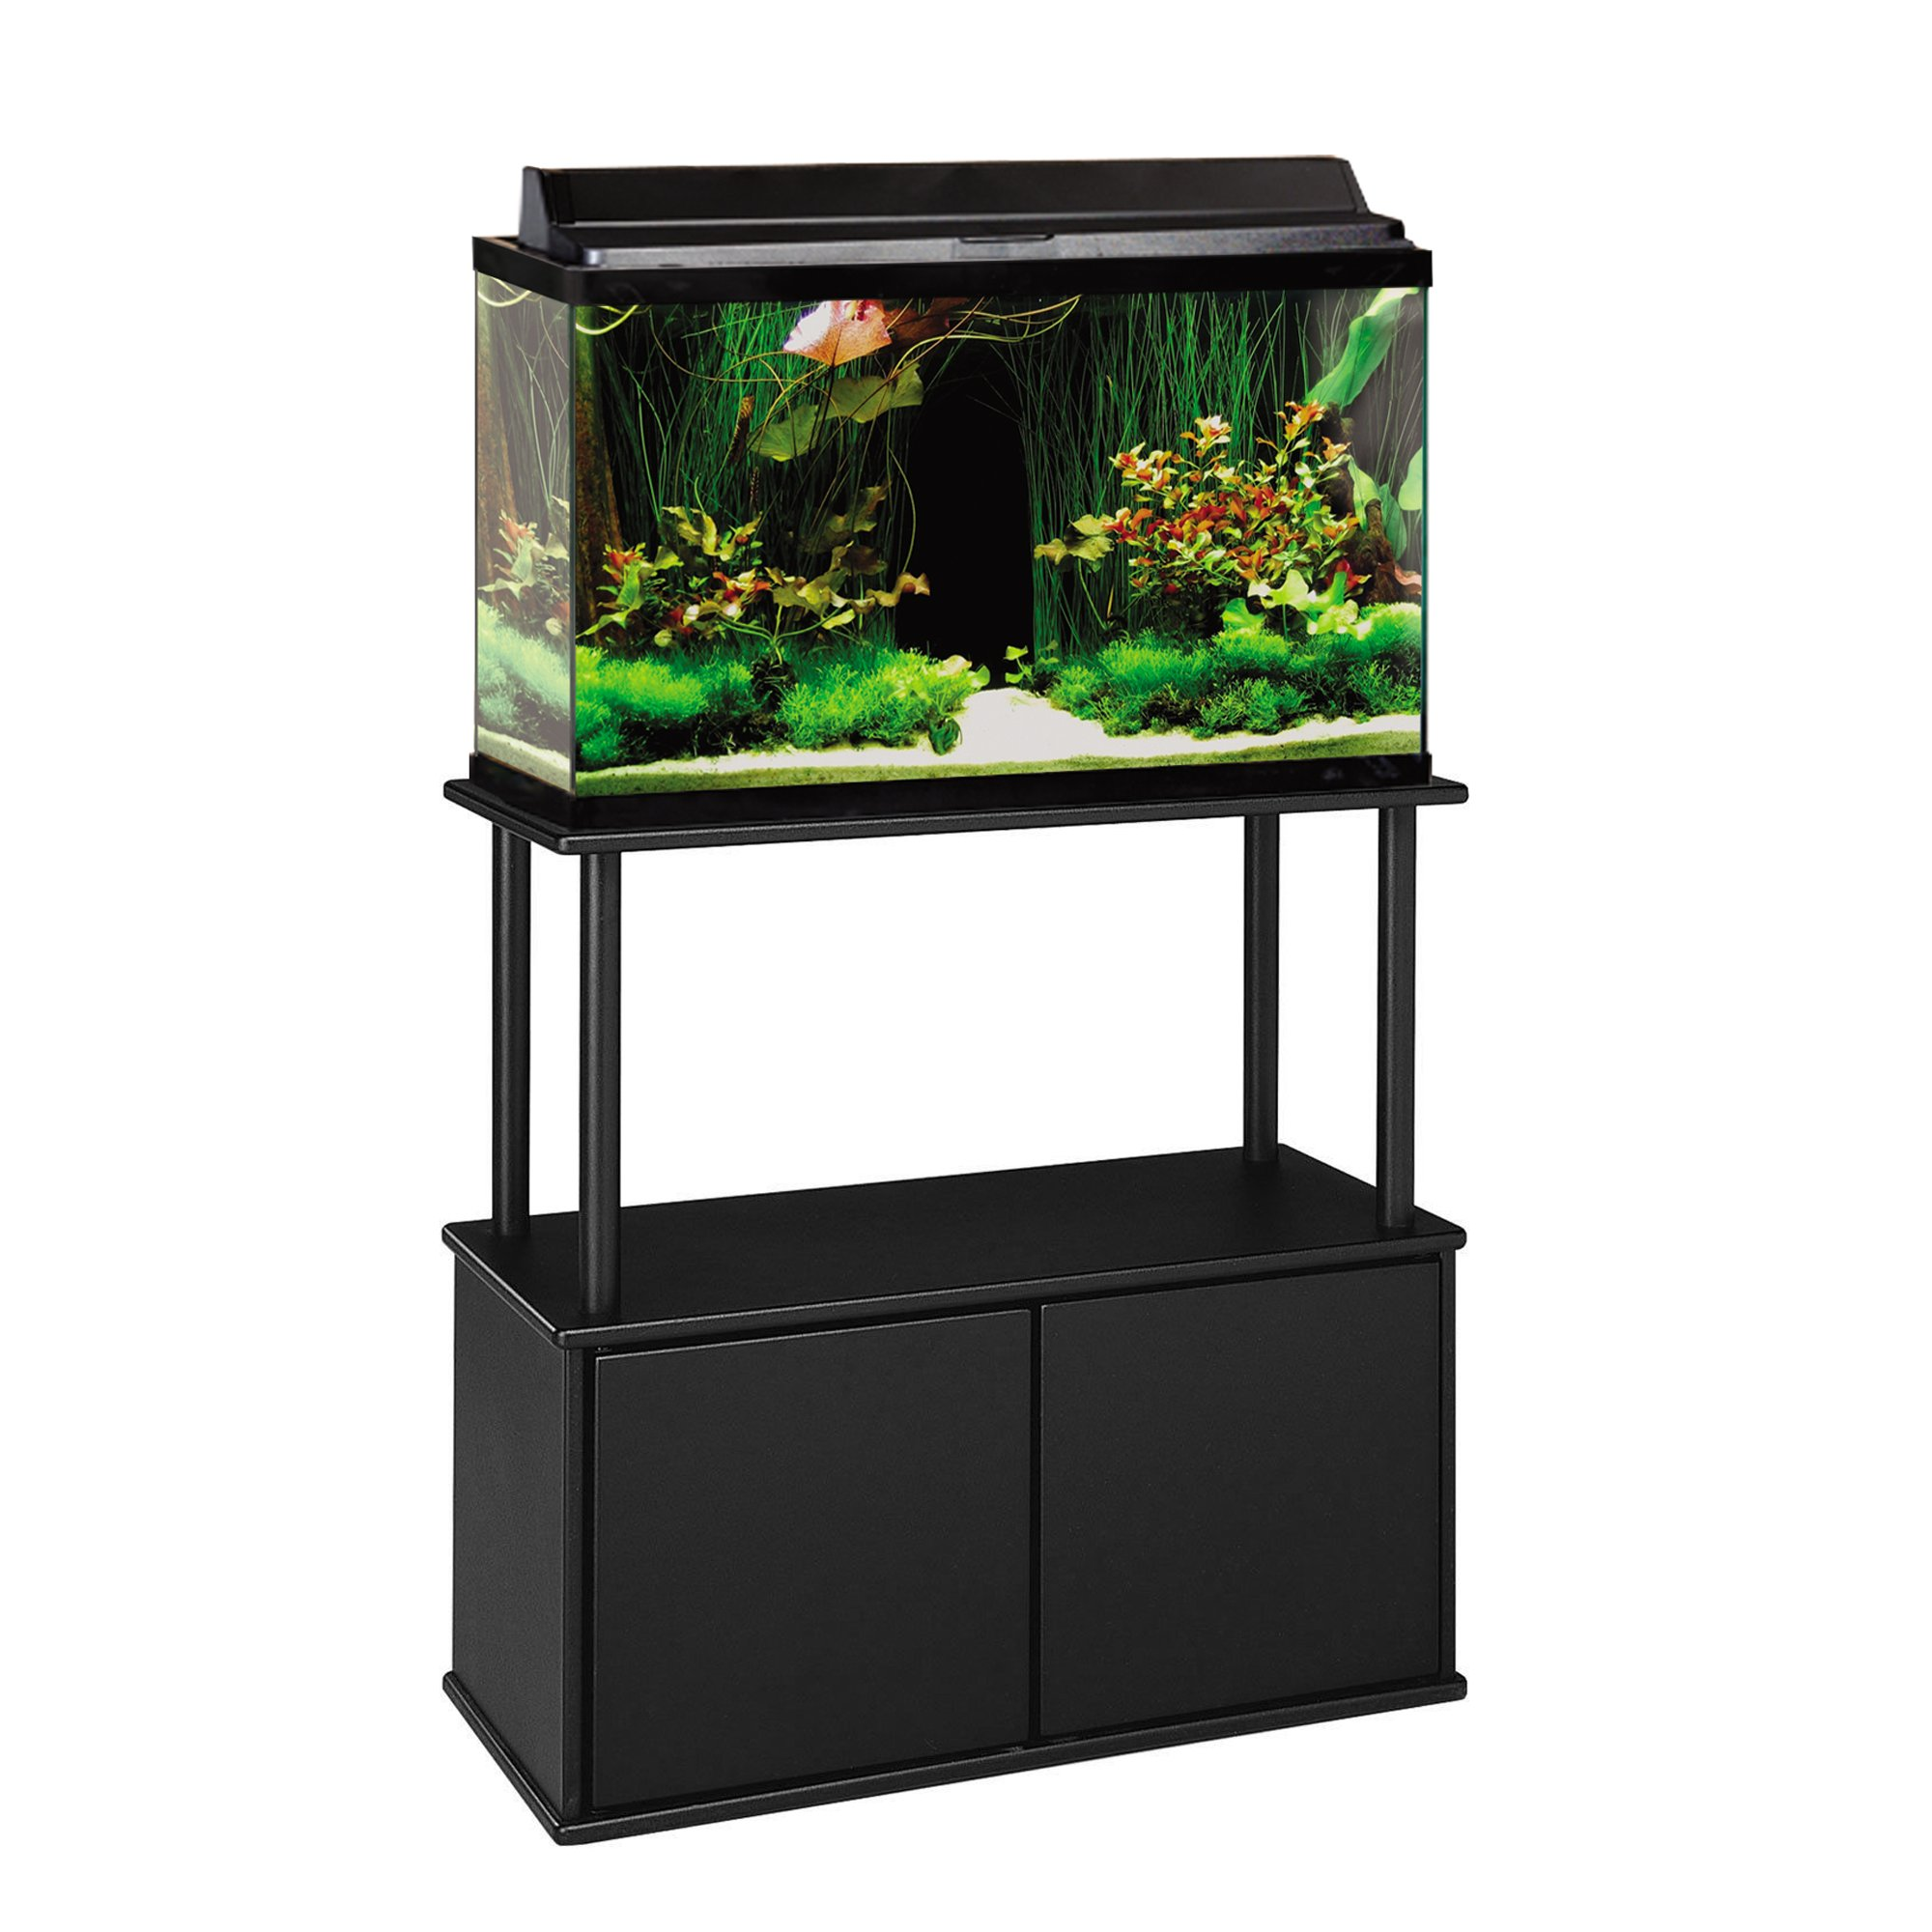 aquatic fundamentals 20 and 29 gallon aquarium stand with